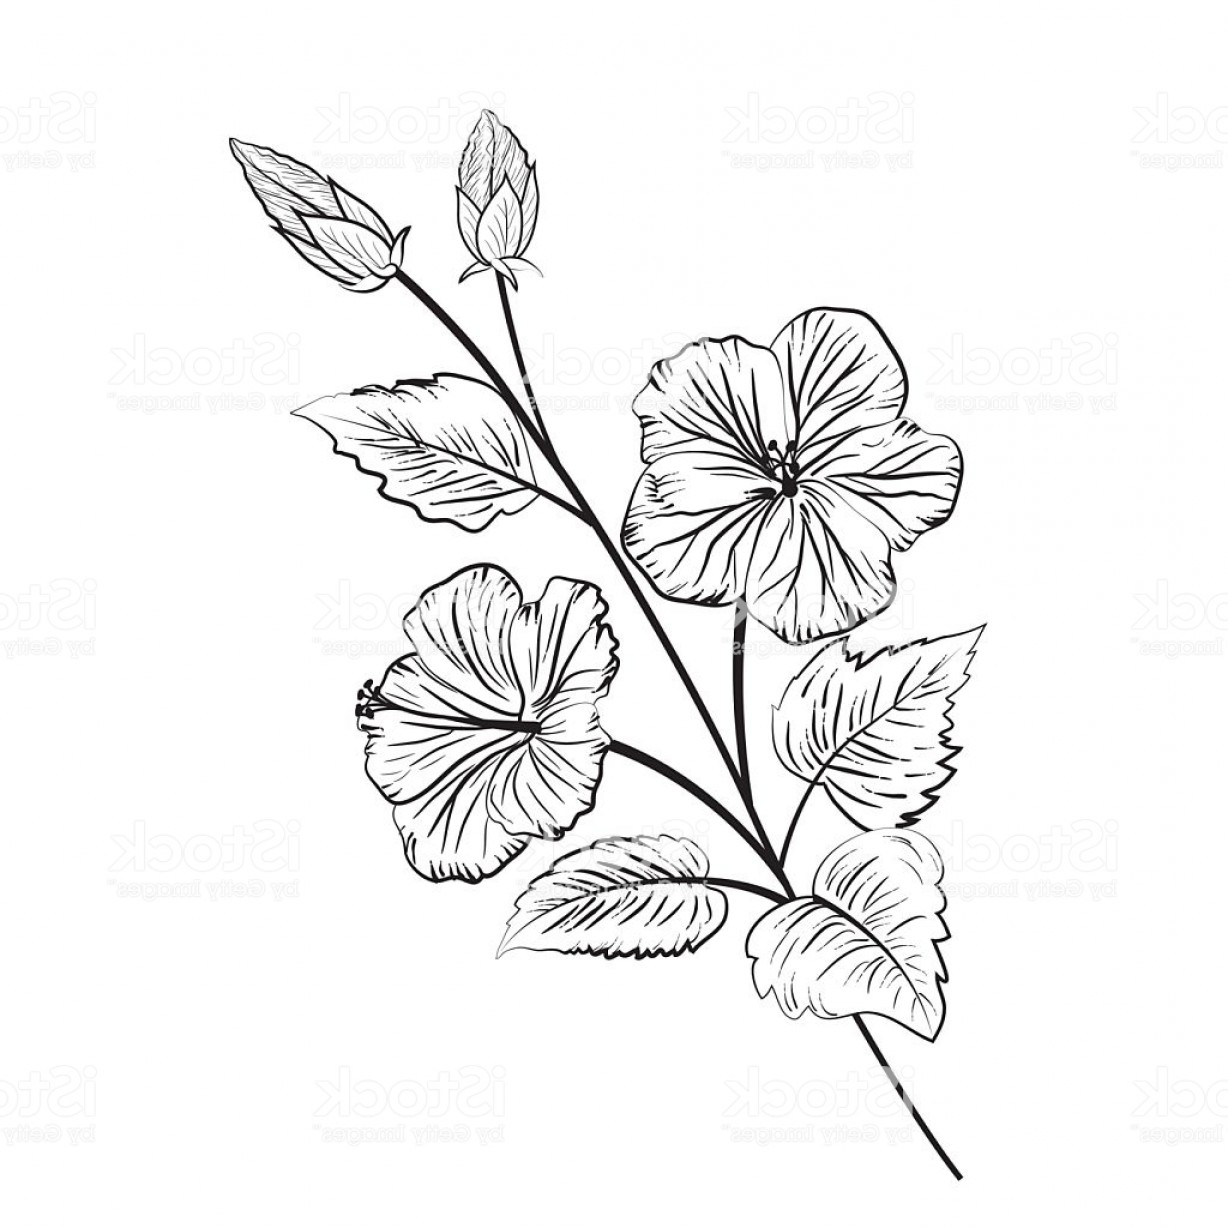 Botanical Flower Vectors: Botanical Style Illustration Of Hibiscus Flowers Gm